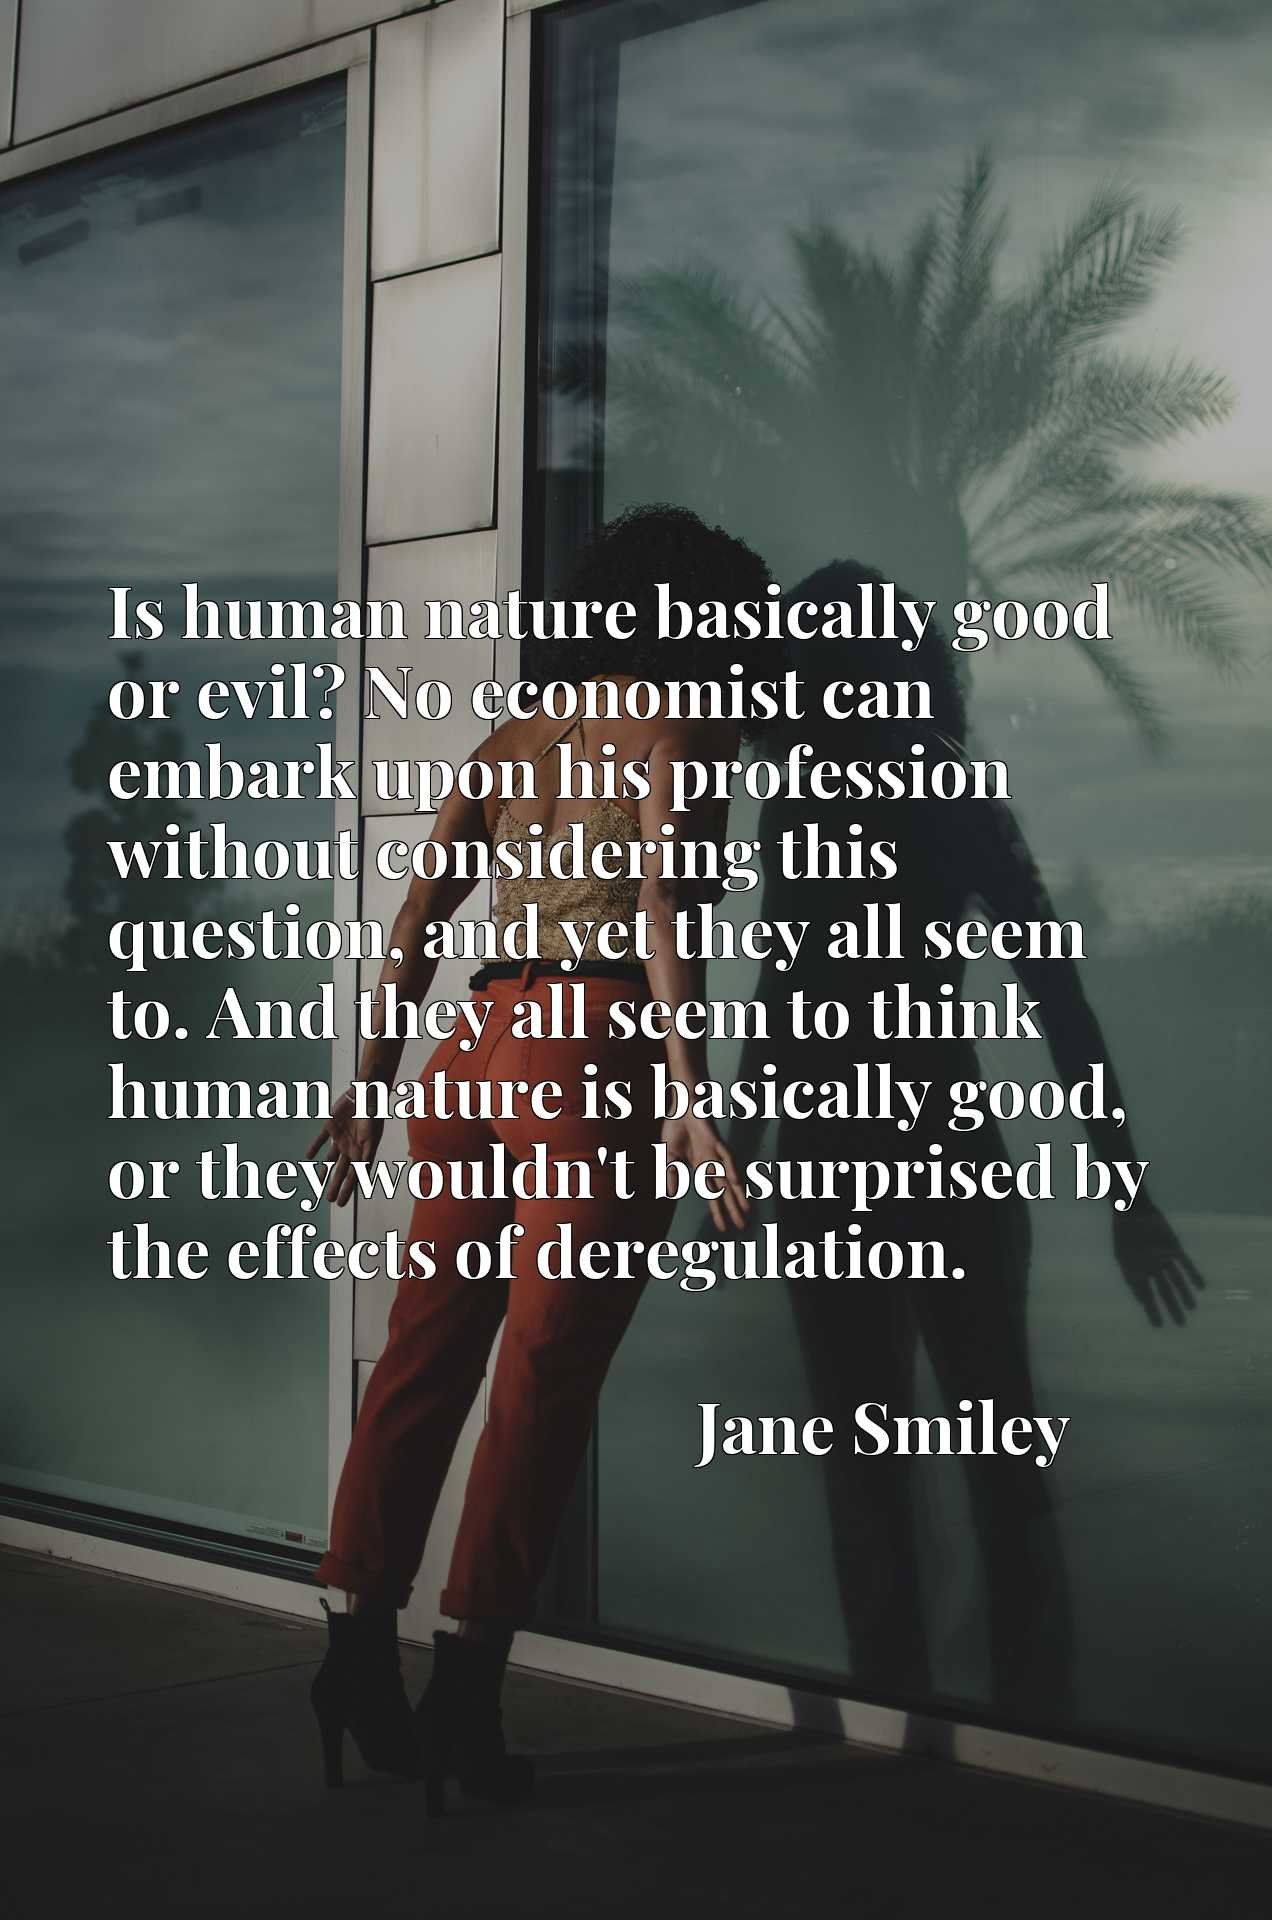 Quote Picture :Is human nature basically good or evil? No economist can embark upon his profession without considering this question, and yet they all seem to. And they all seem to think human nature is basically good, or they wouldn't be surprised by the effects of deregulation.